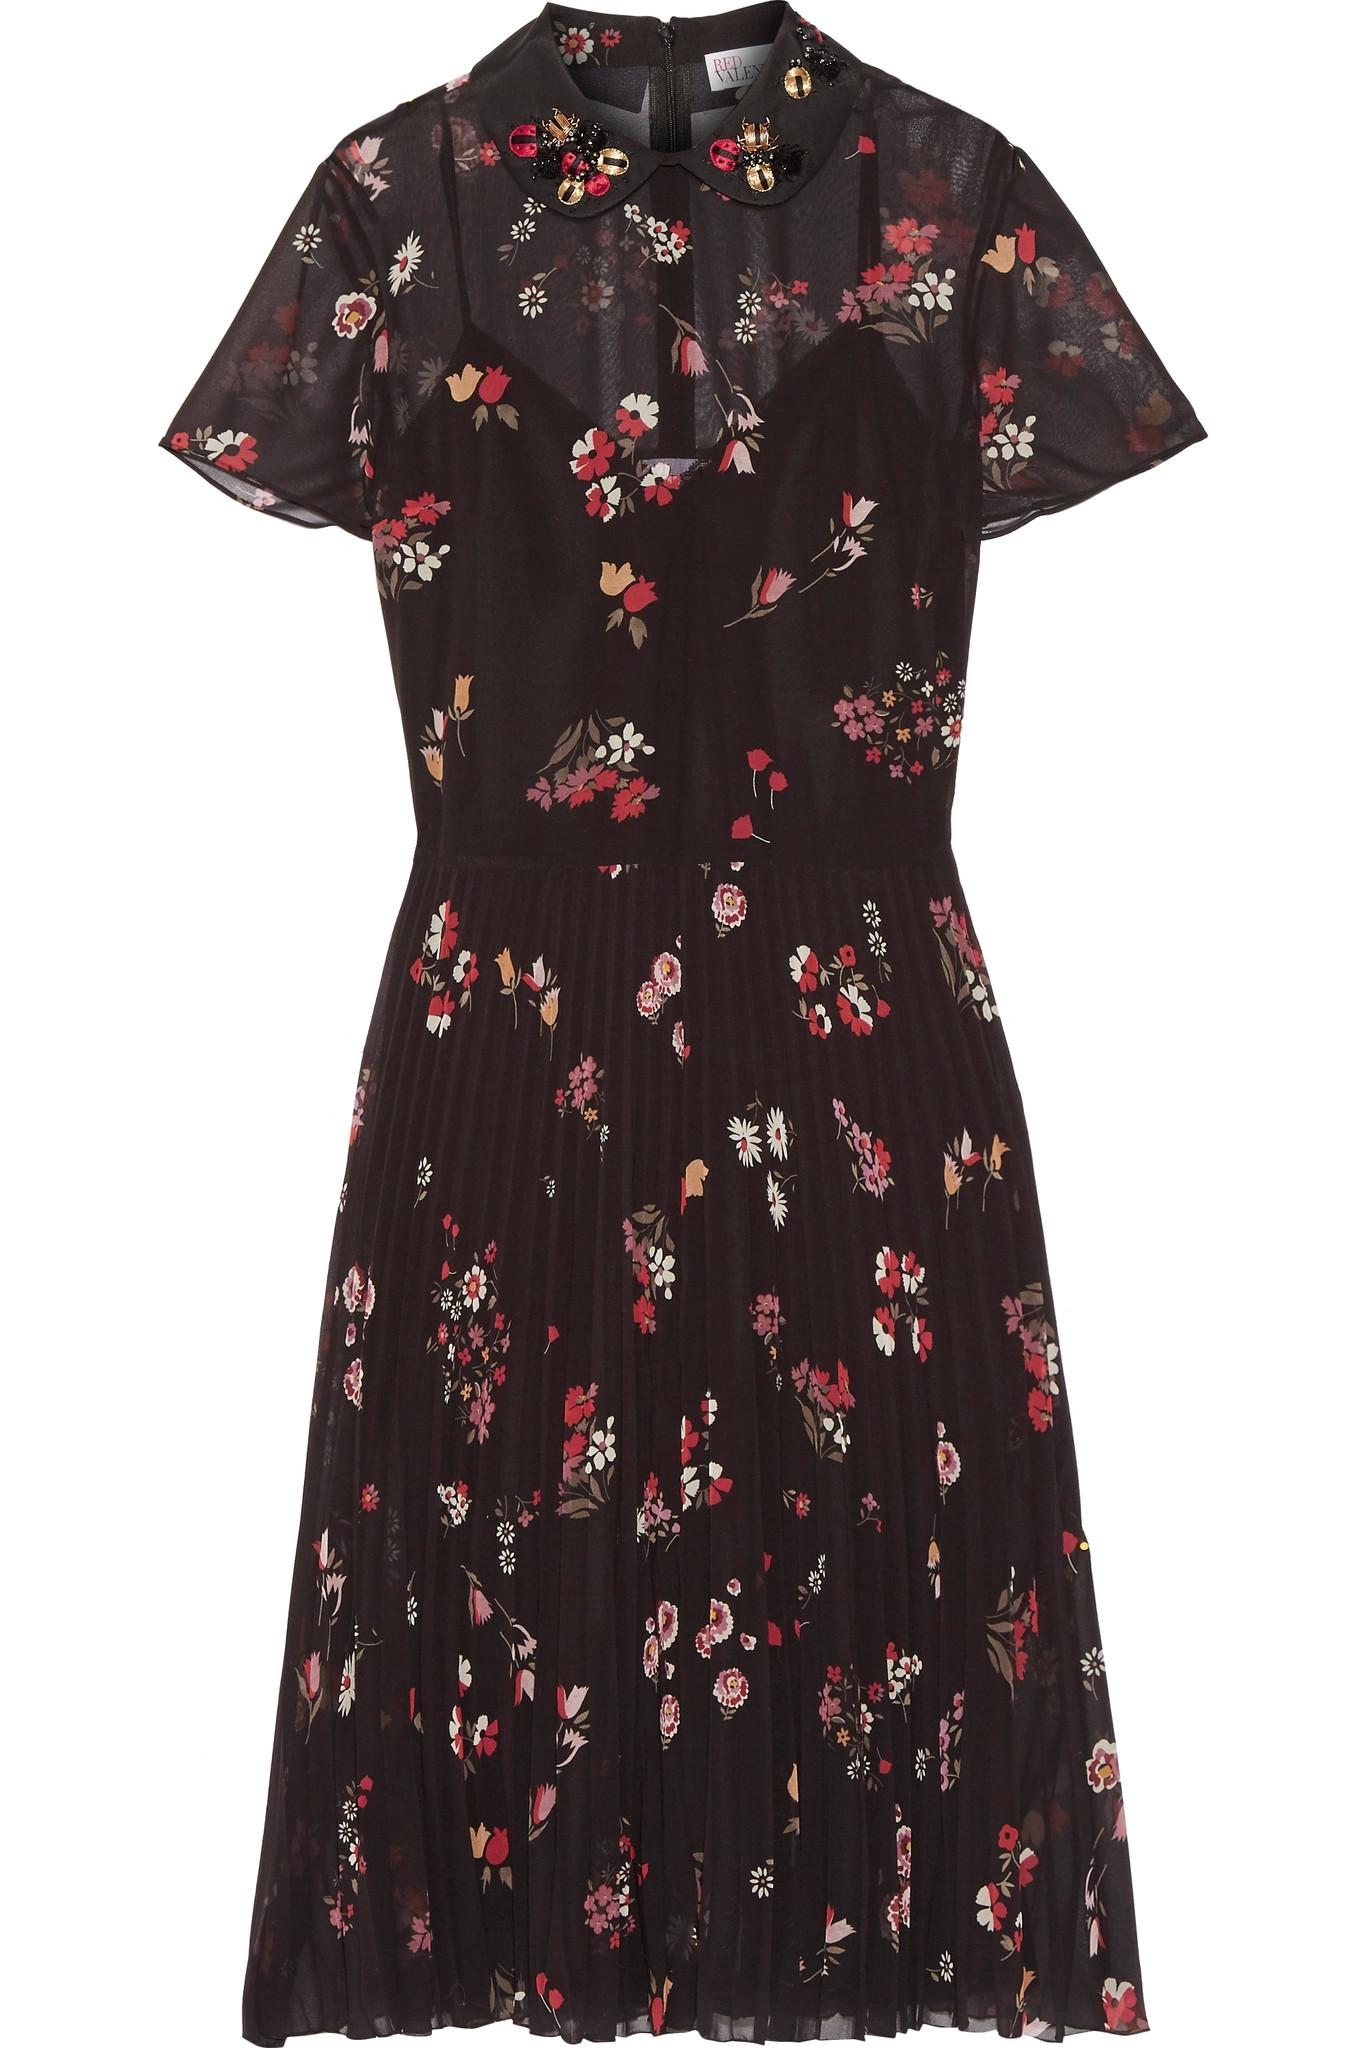 Red valentino embellished floral print chiffon dress in